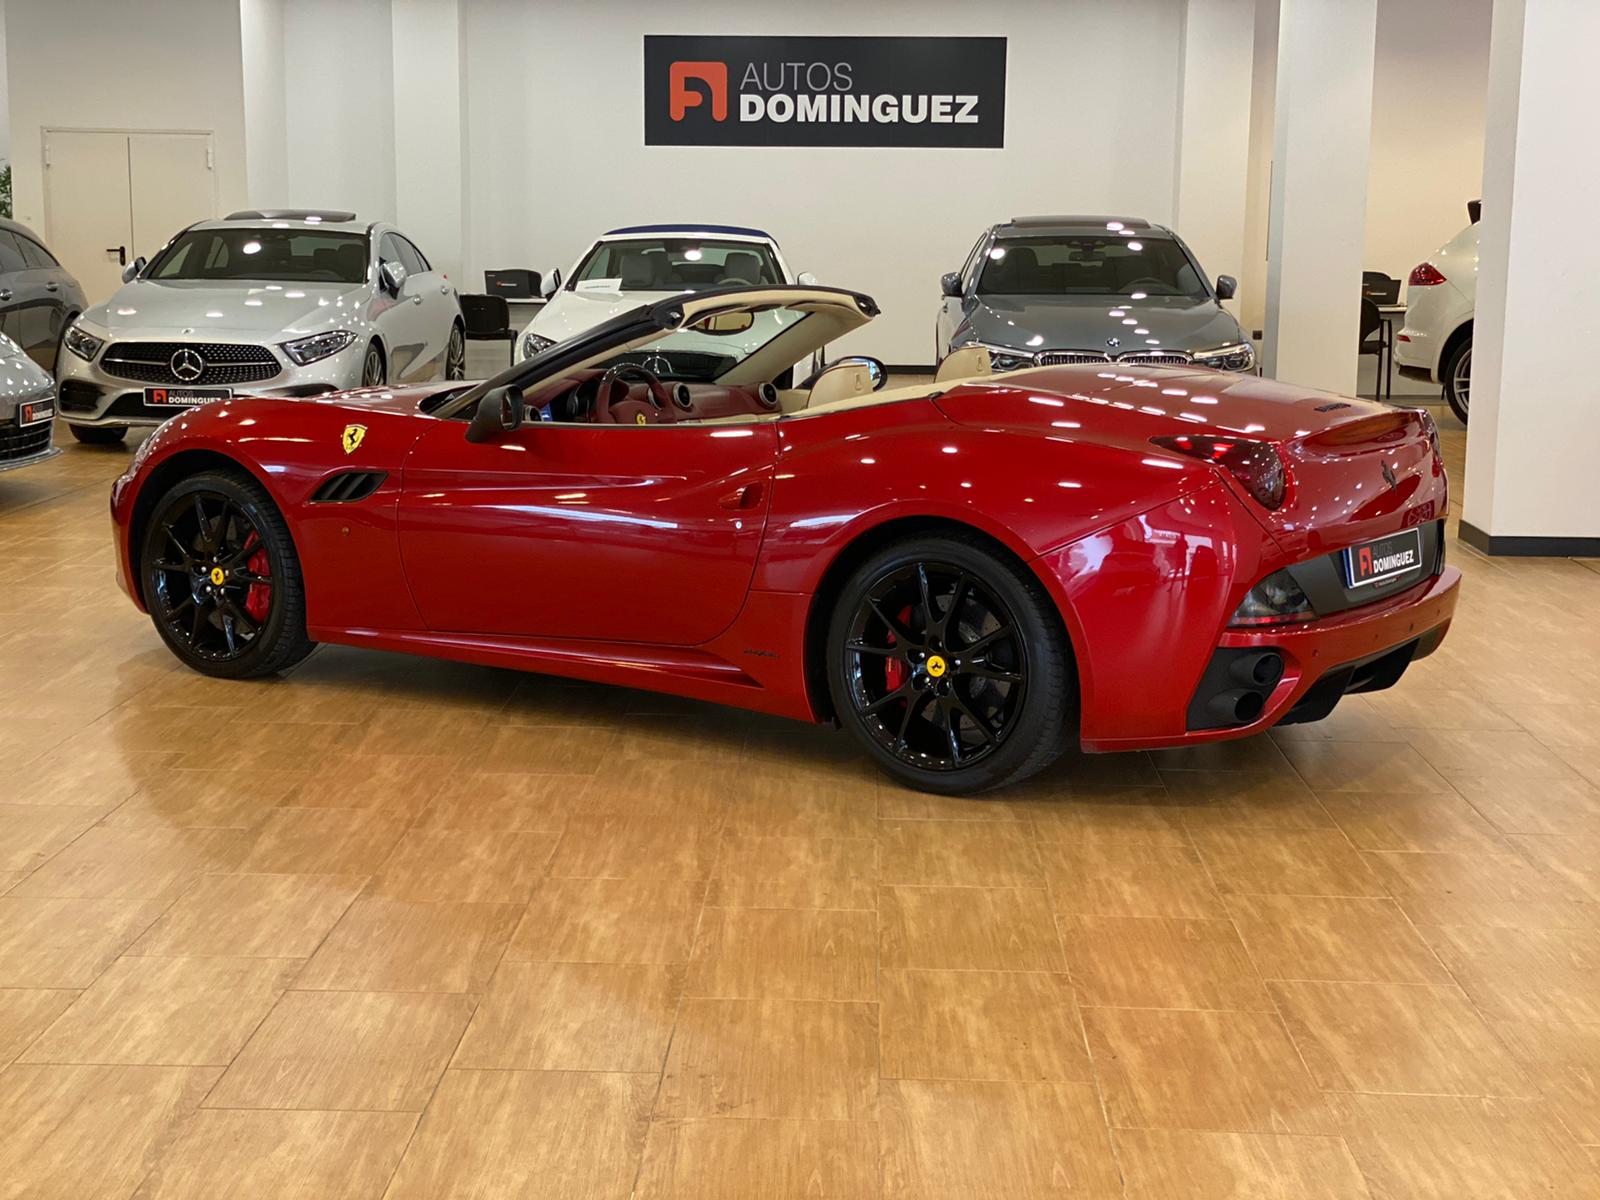 FERRARI CALIFORNIA TAILOR MADE 4 PLAZAS 460 CV 5